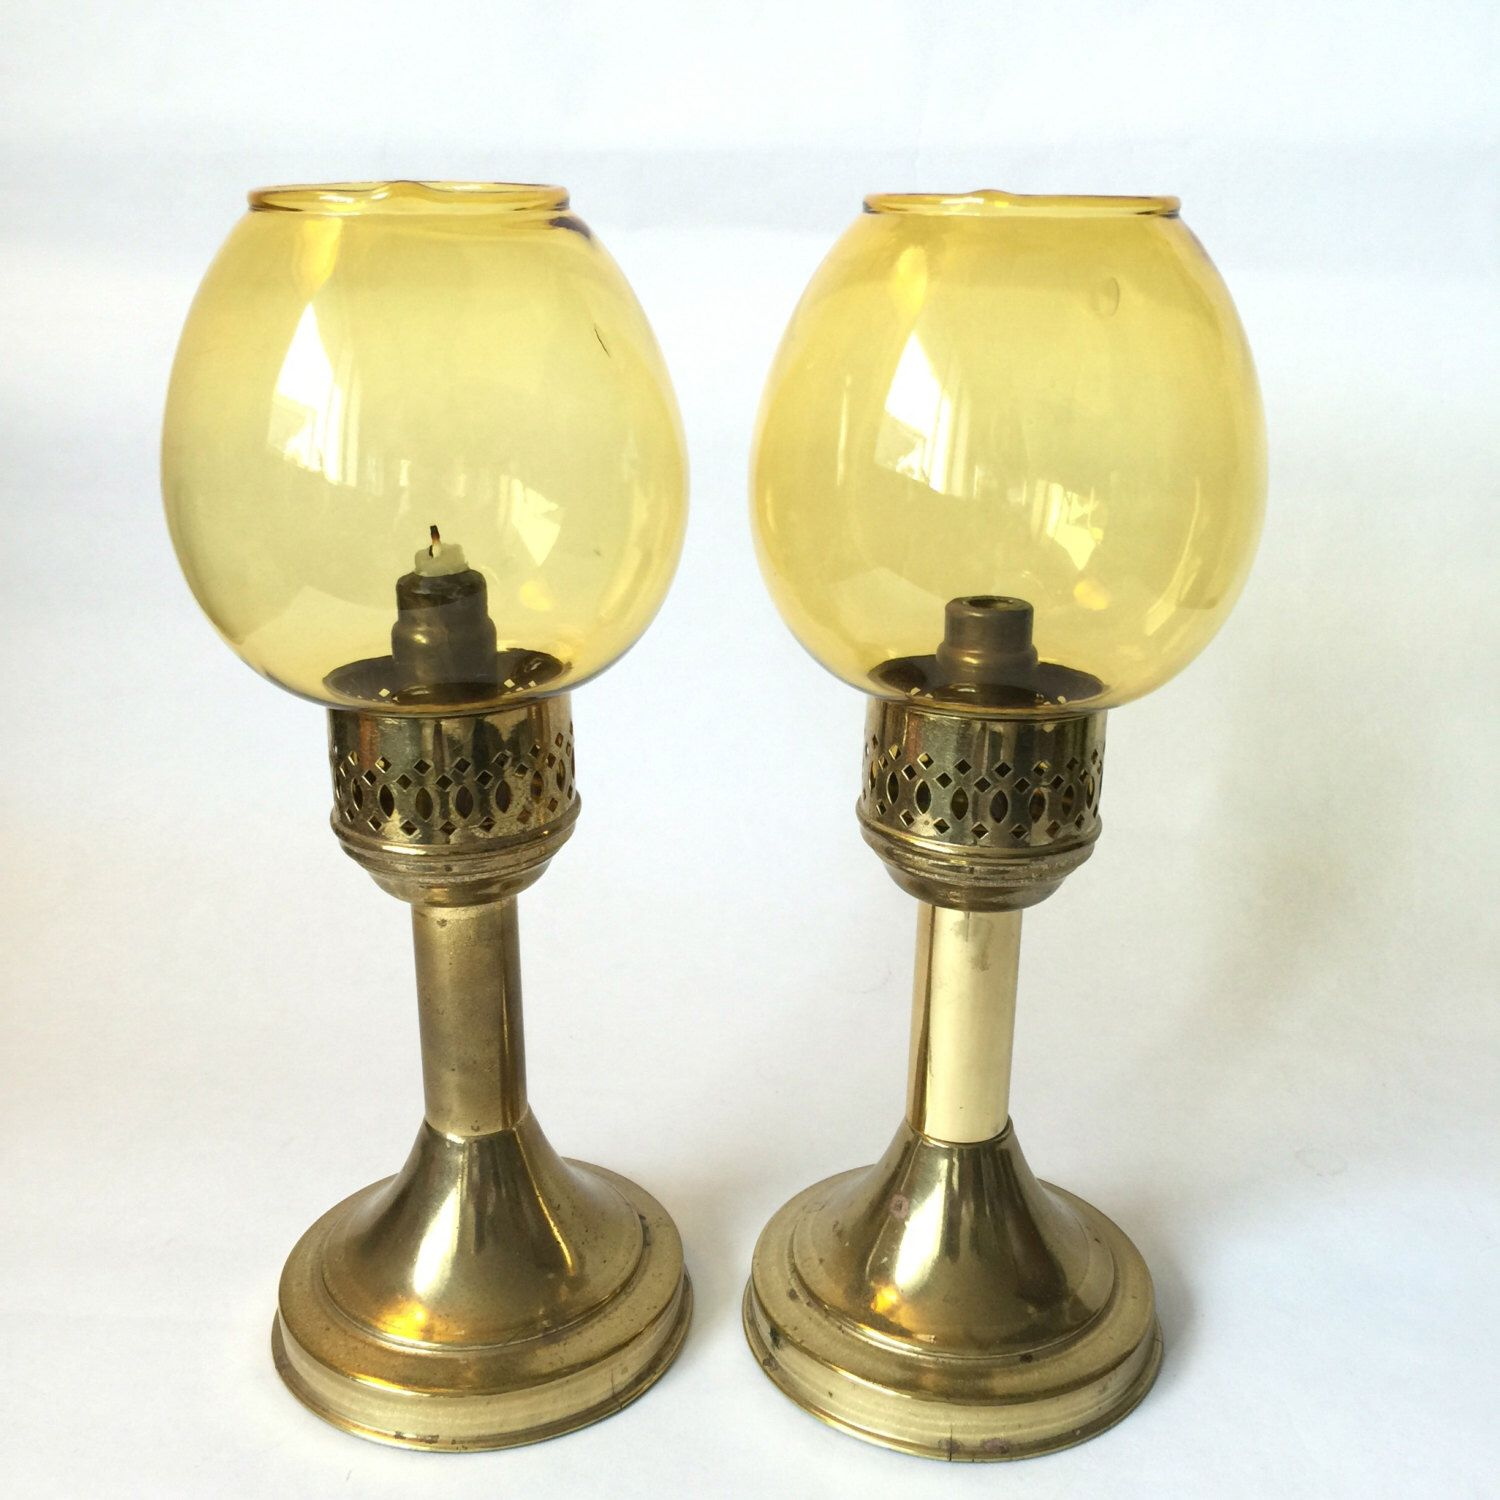 Candle Lamps With Amber Glass Shades, Brass Candlesticks, Candle ...